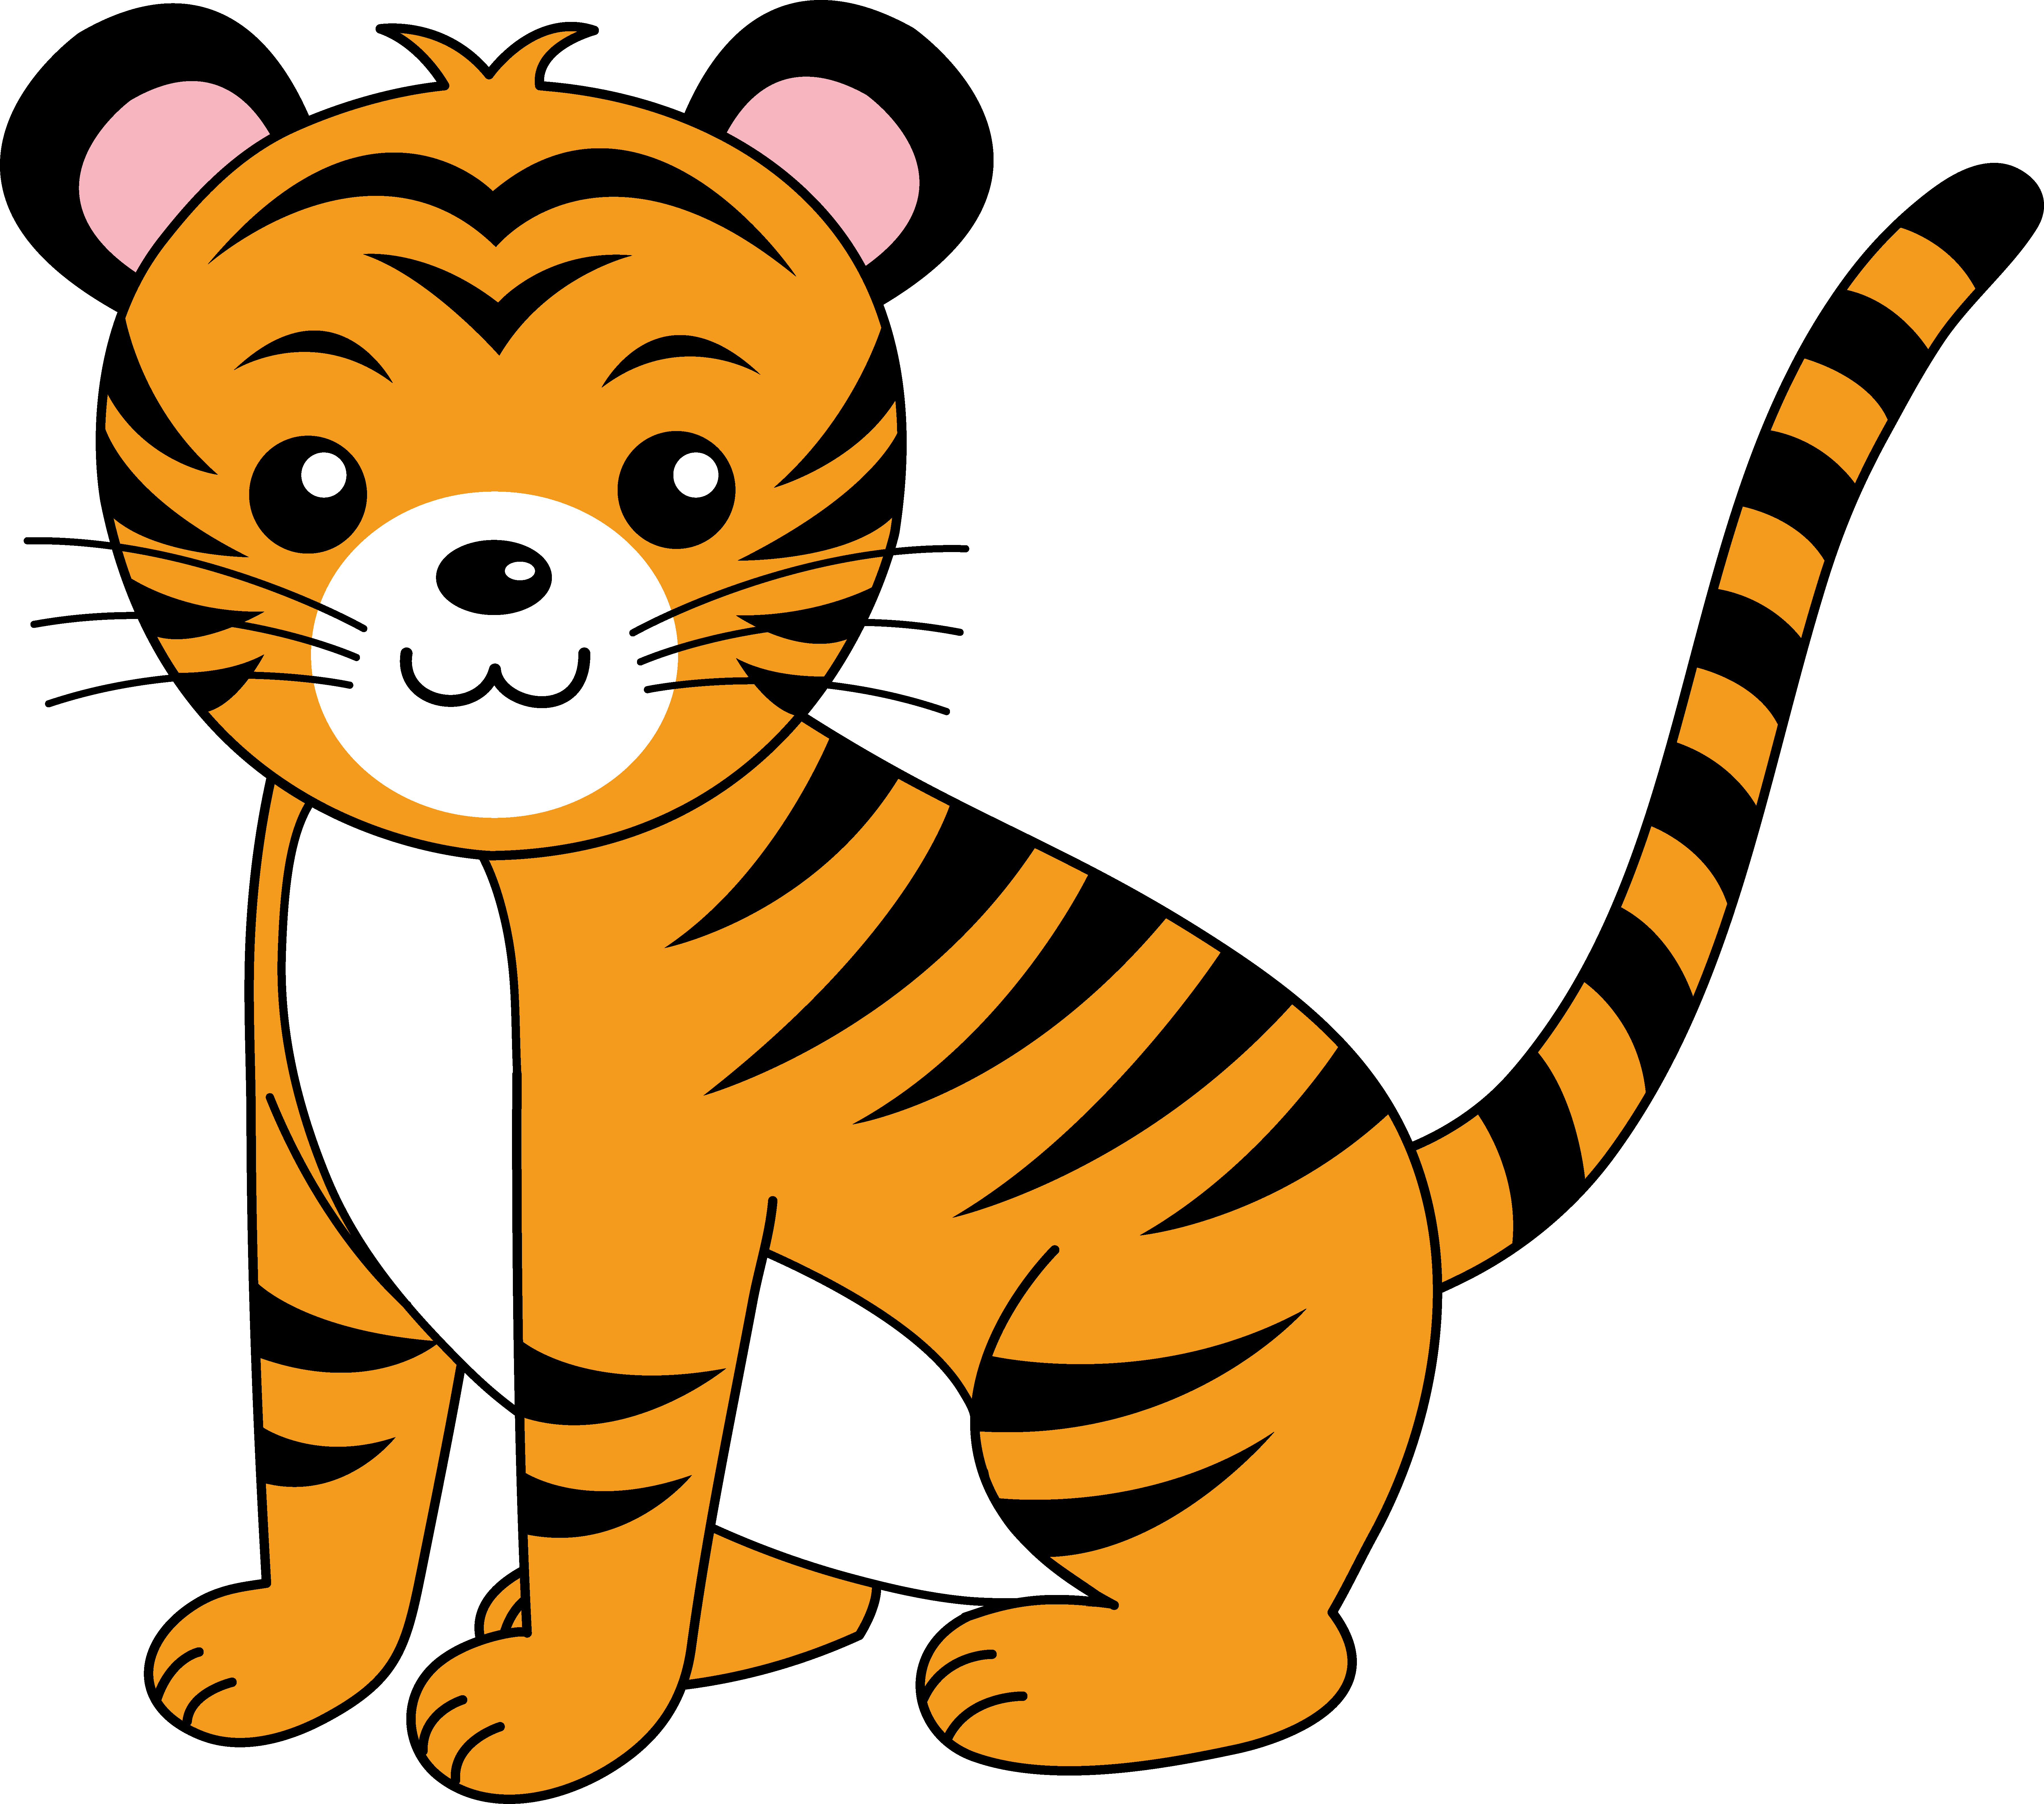 Free clipart tiger reading book graphic freeuse download adorable clipart free | Free Clip Art | kids | Pinterest | Clip art ... graphic freeuse download